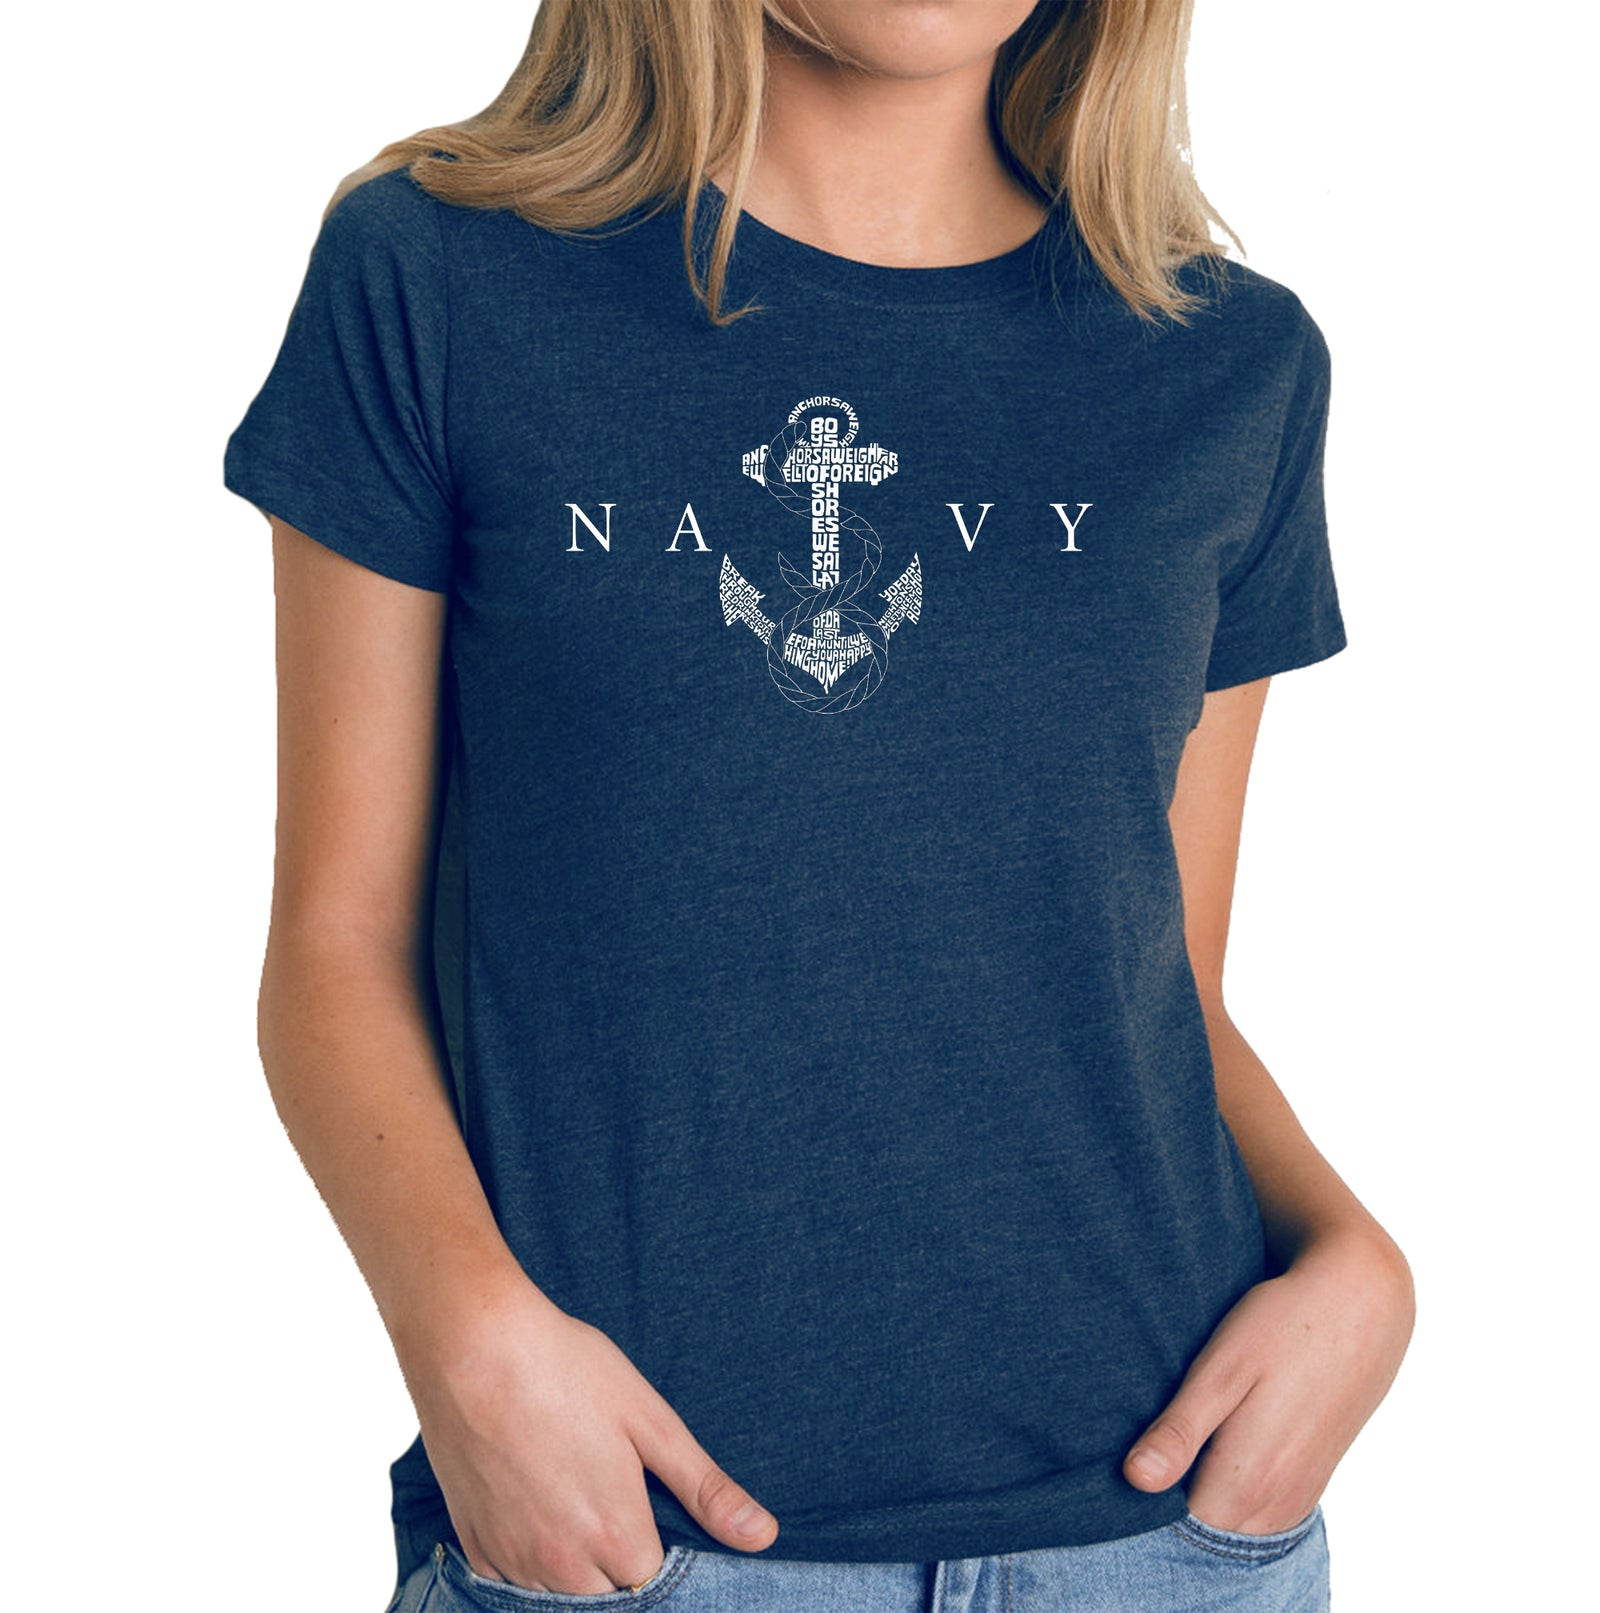 Women's Premium Blend Word Art T-shirt - LYRICS TO ANCHORS AWEIGH